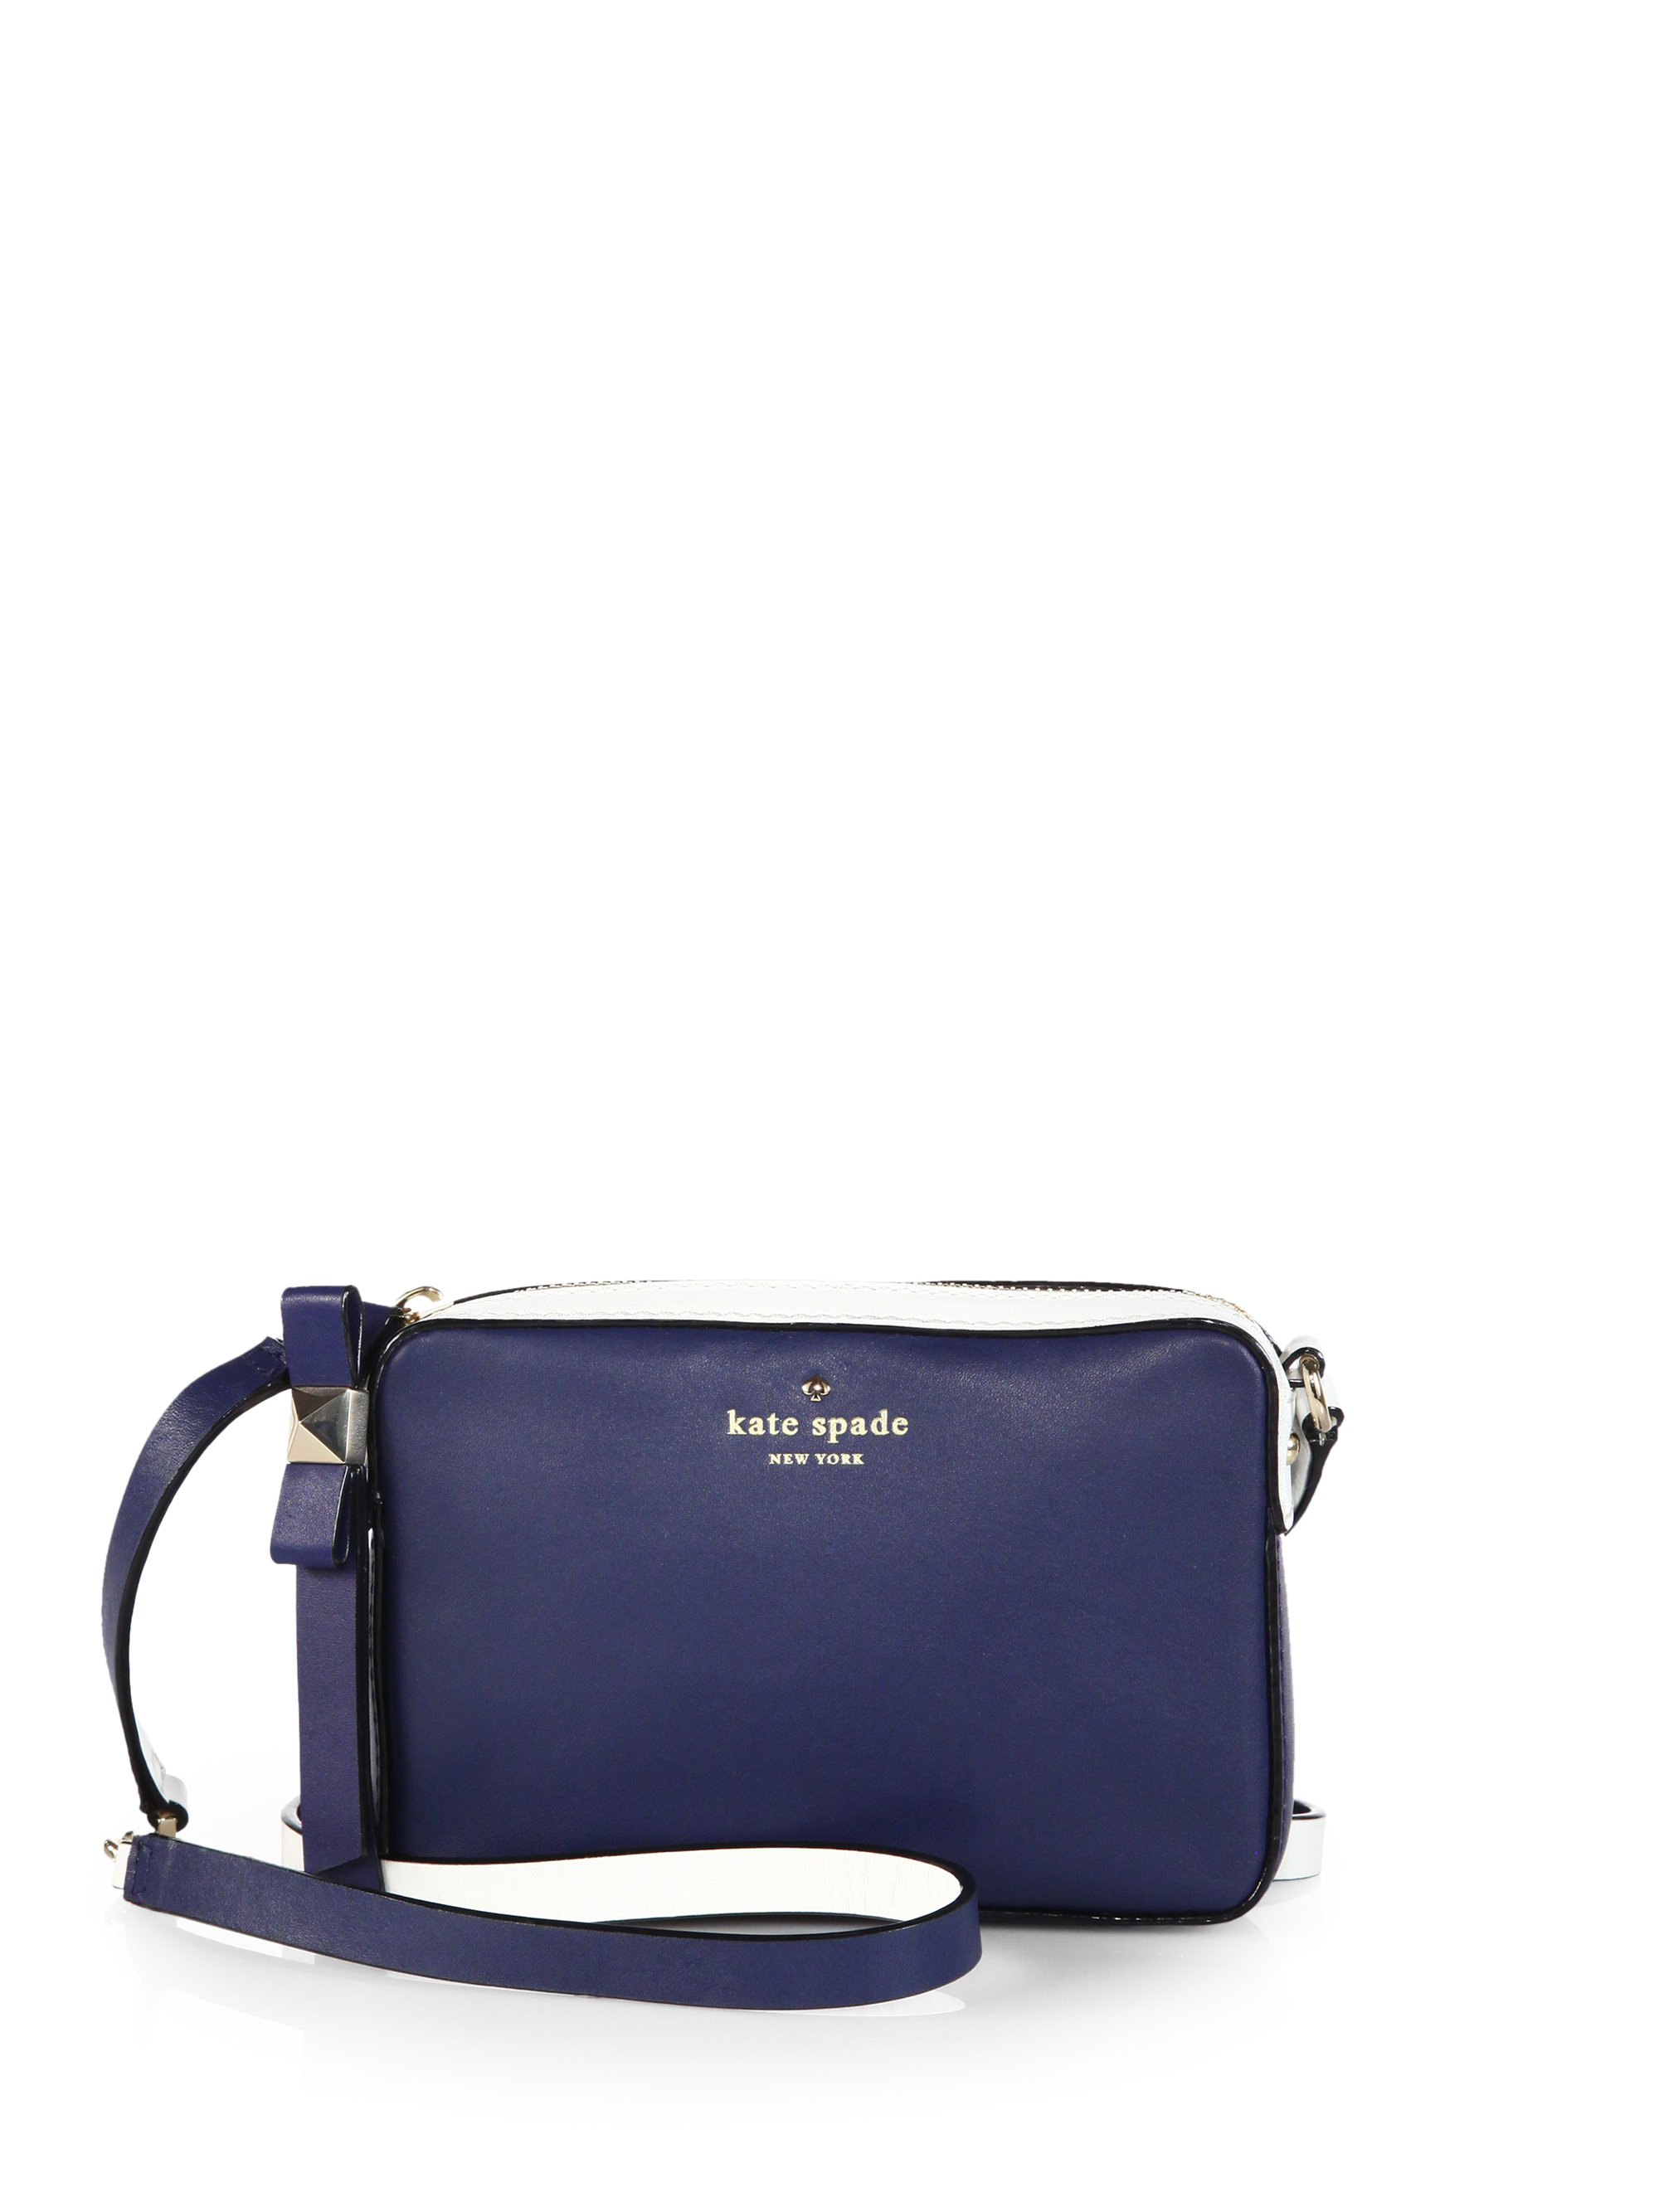 Kate spade new york Highliner Bicolor Crossbody Bag in Blue | Lyst